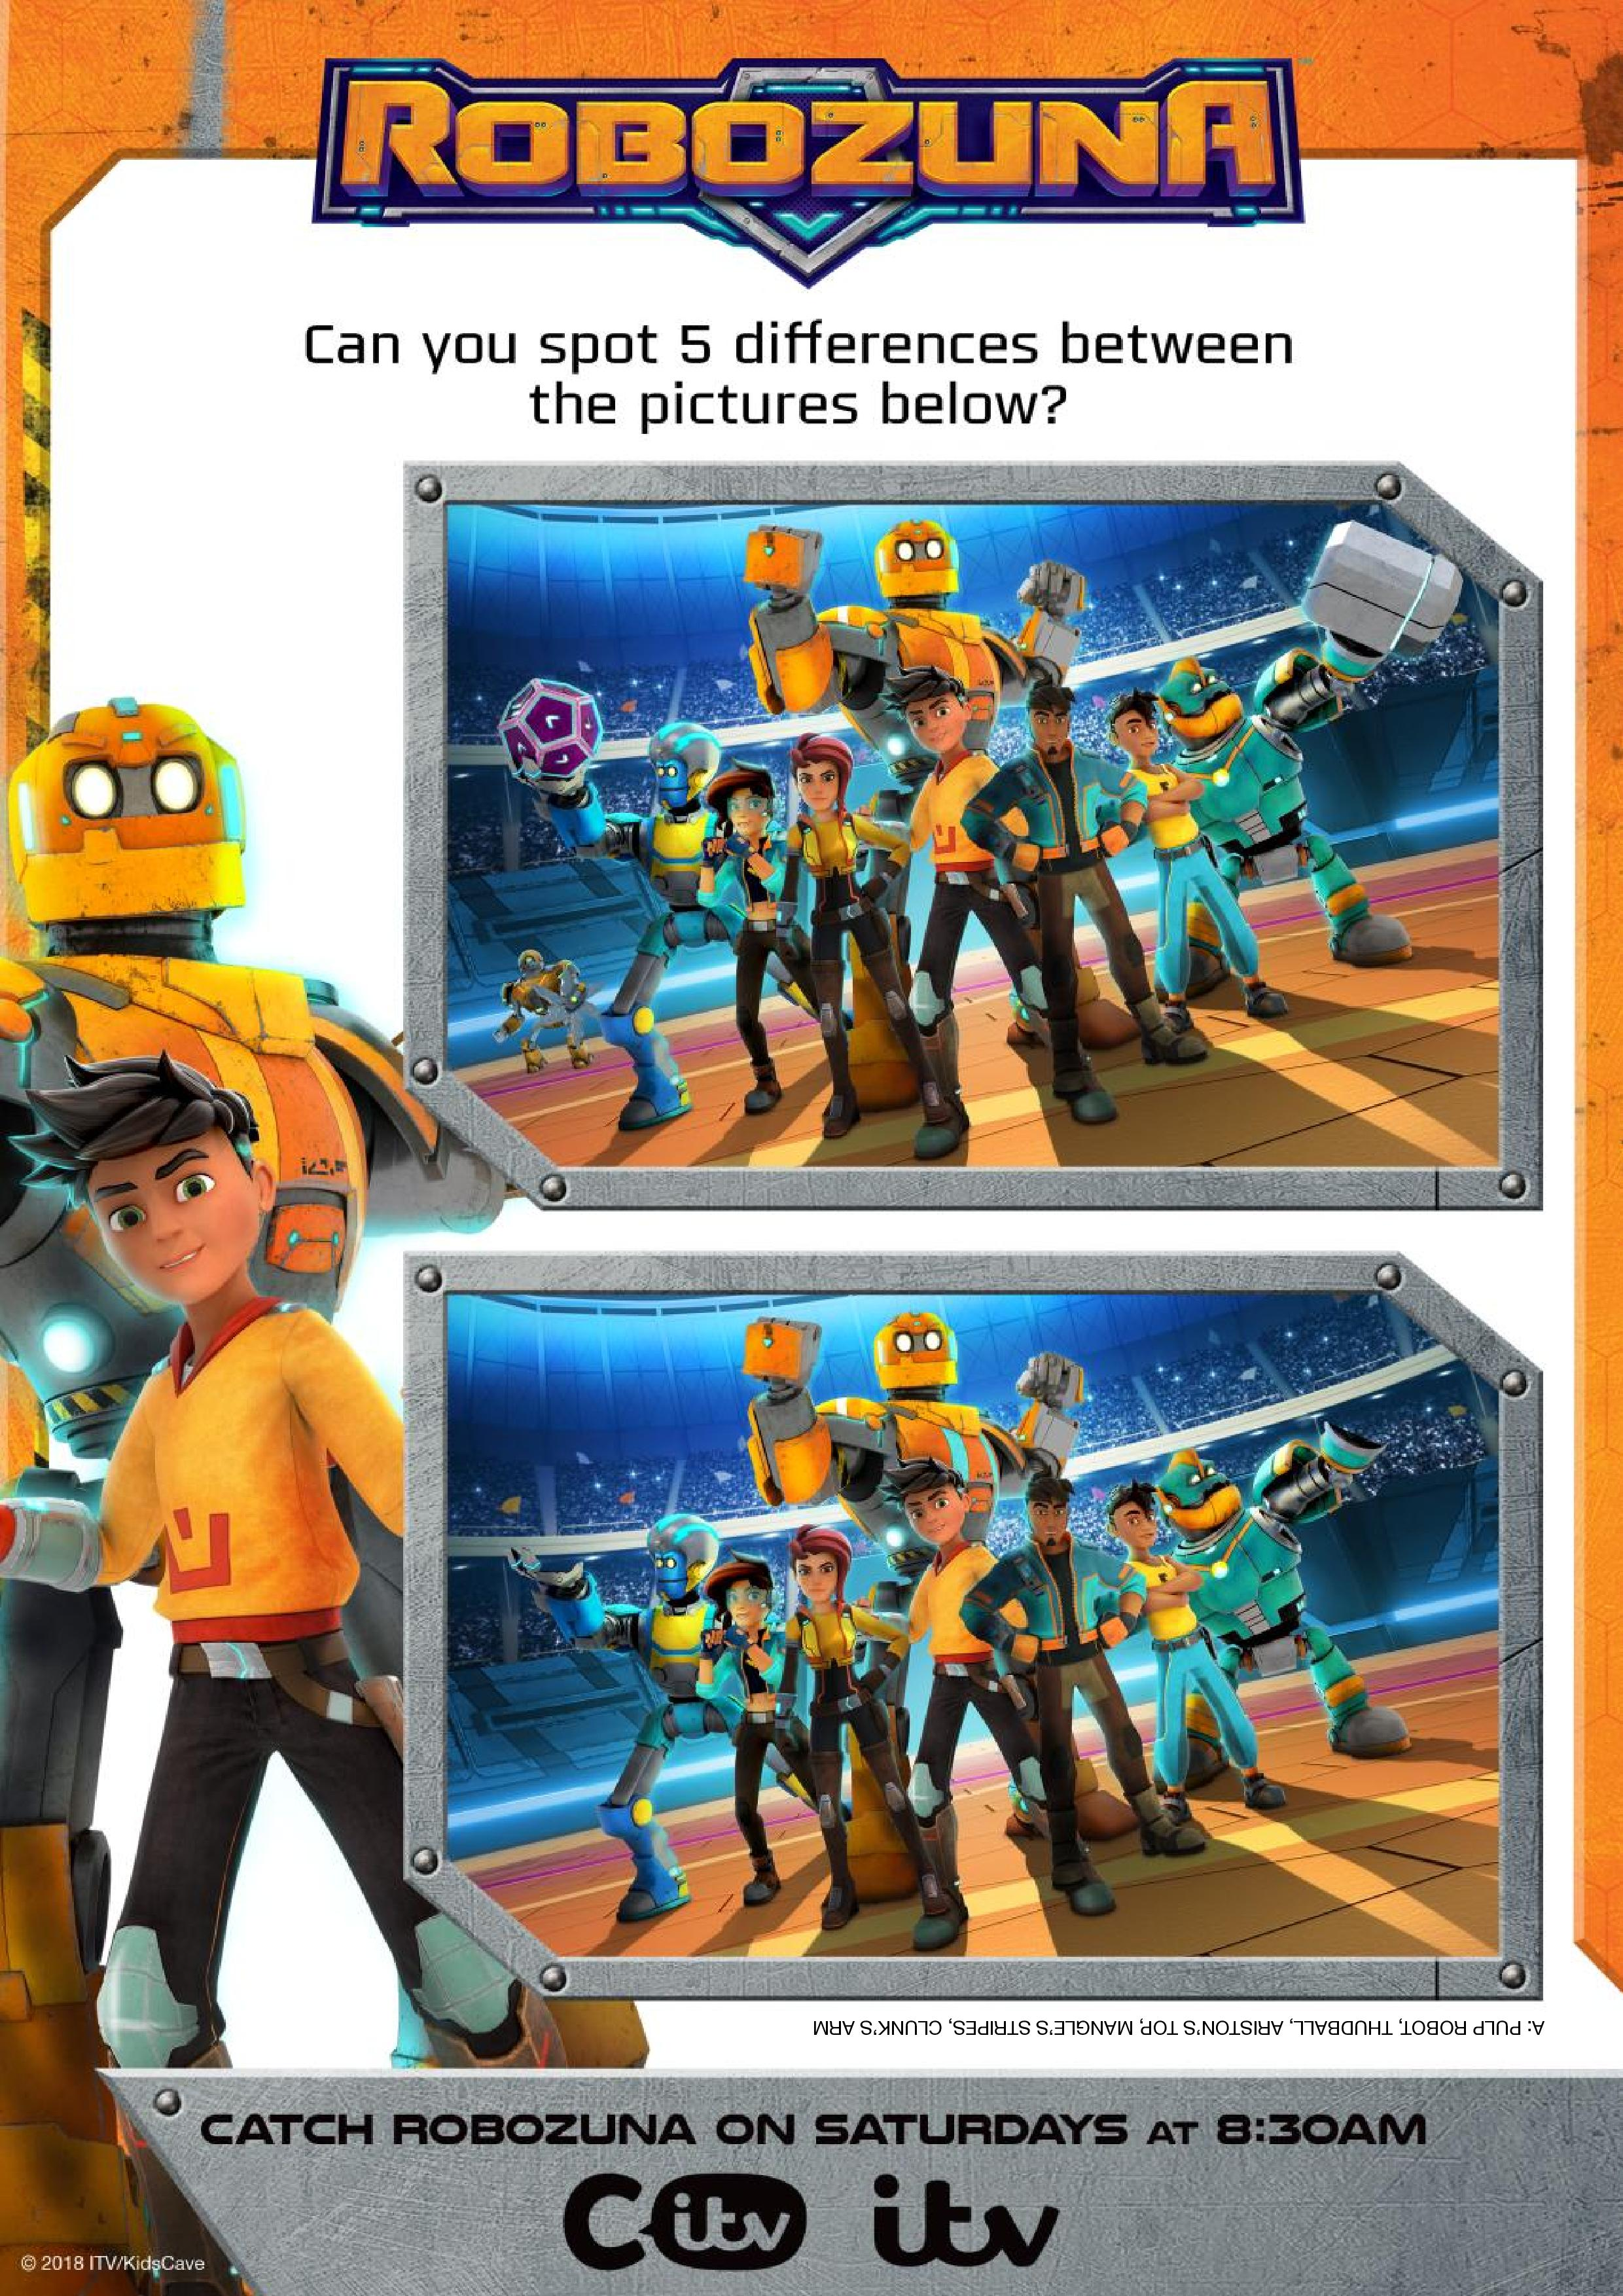 Robozuna Spot the Difference Activity Sheet_01 (NXPowerLite Copy)-page-001